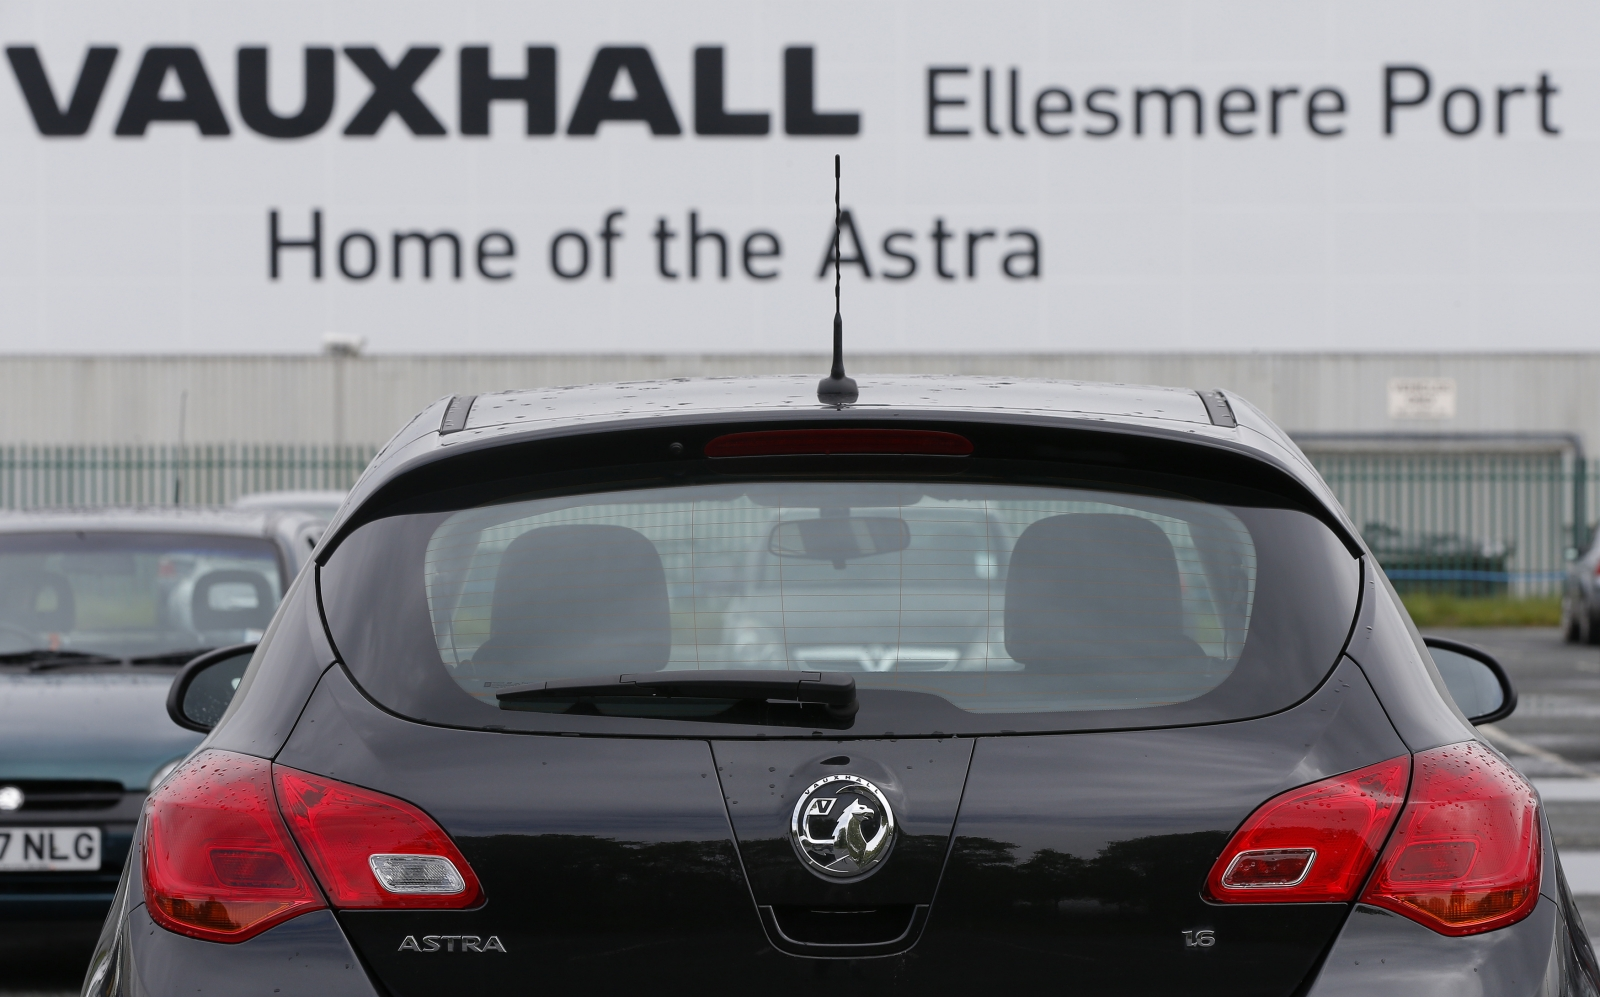 Vauxhall 39 s pension deficit could derail gm deal with psa group for General motors pension plan